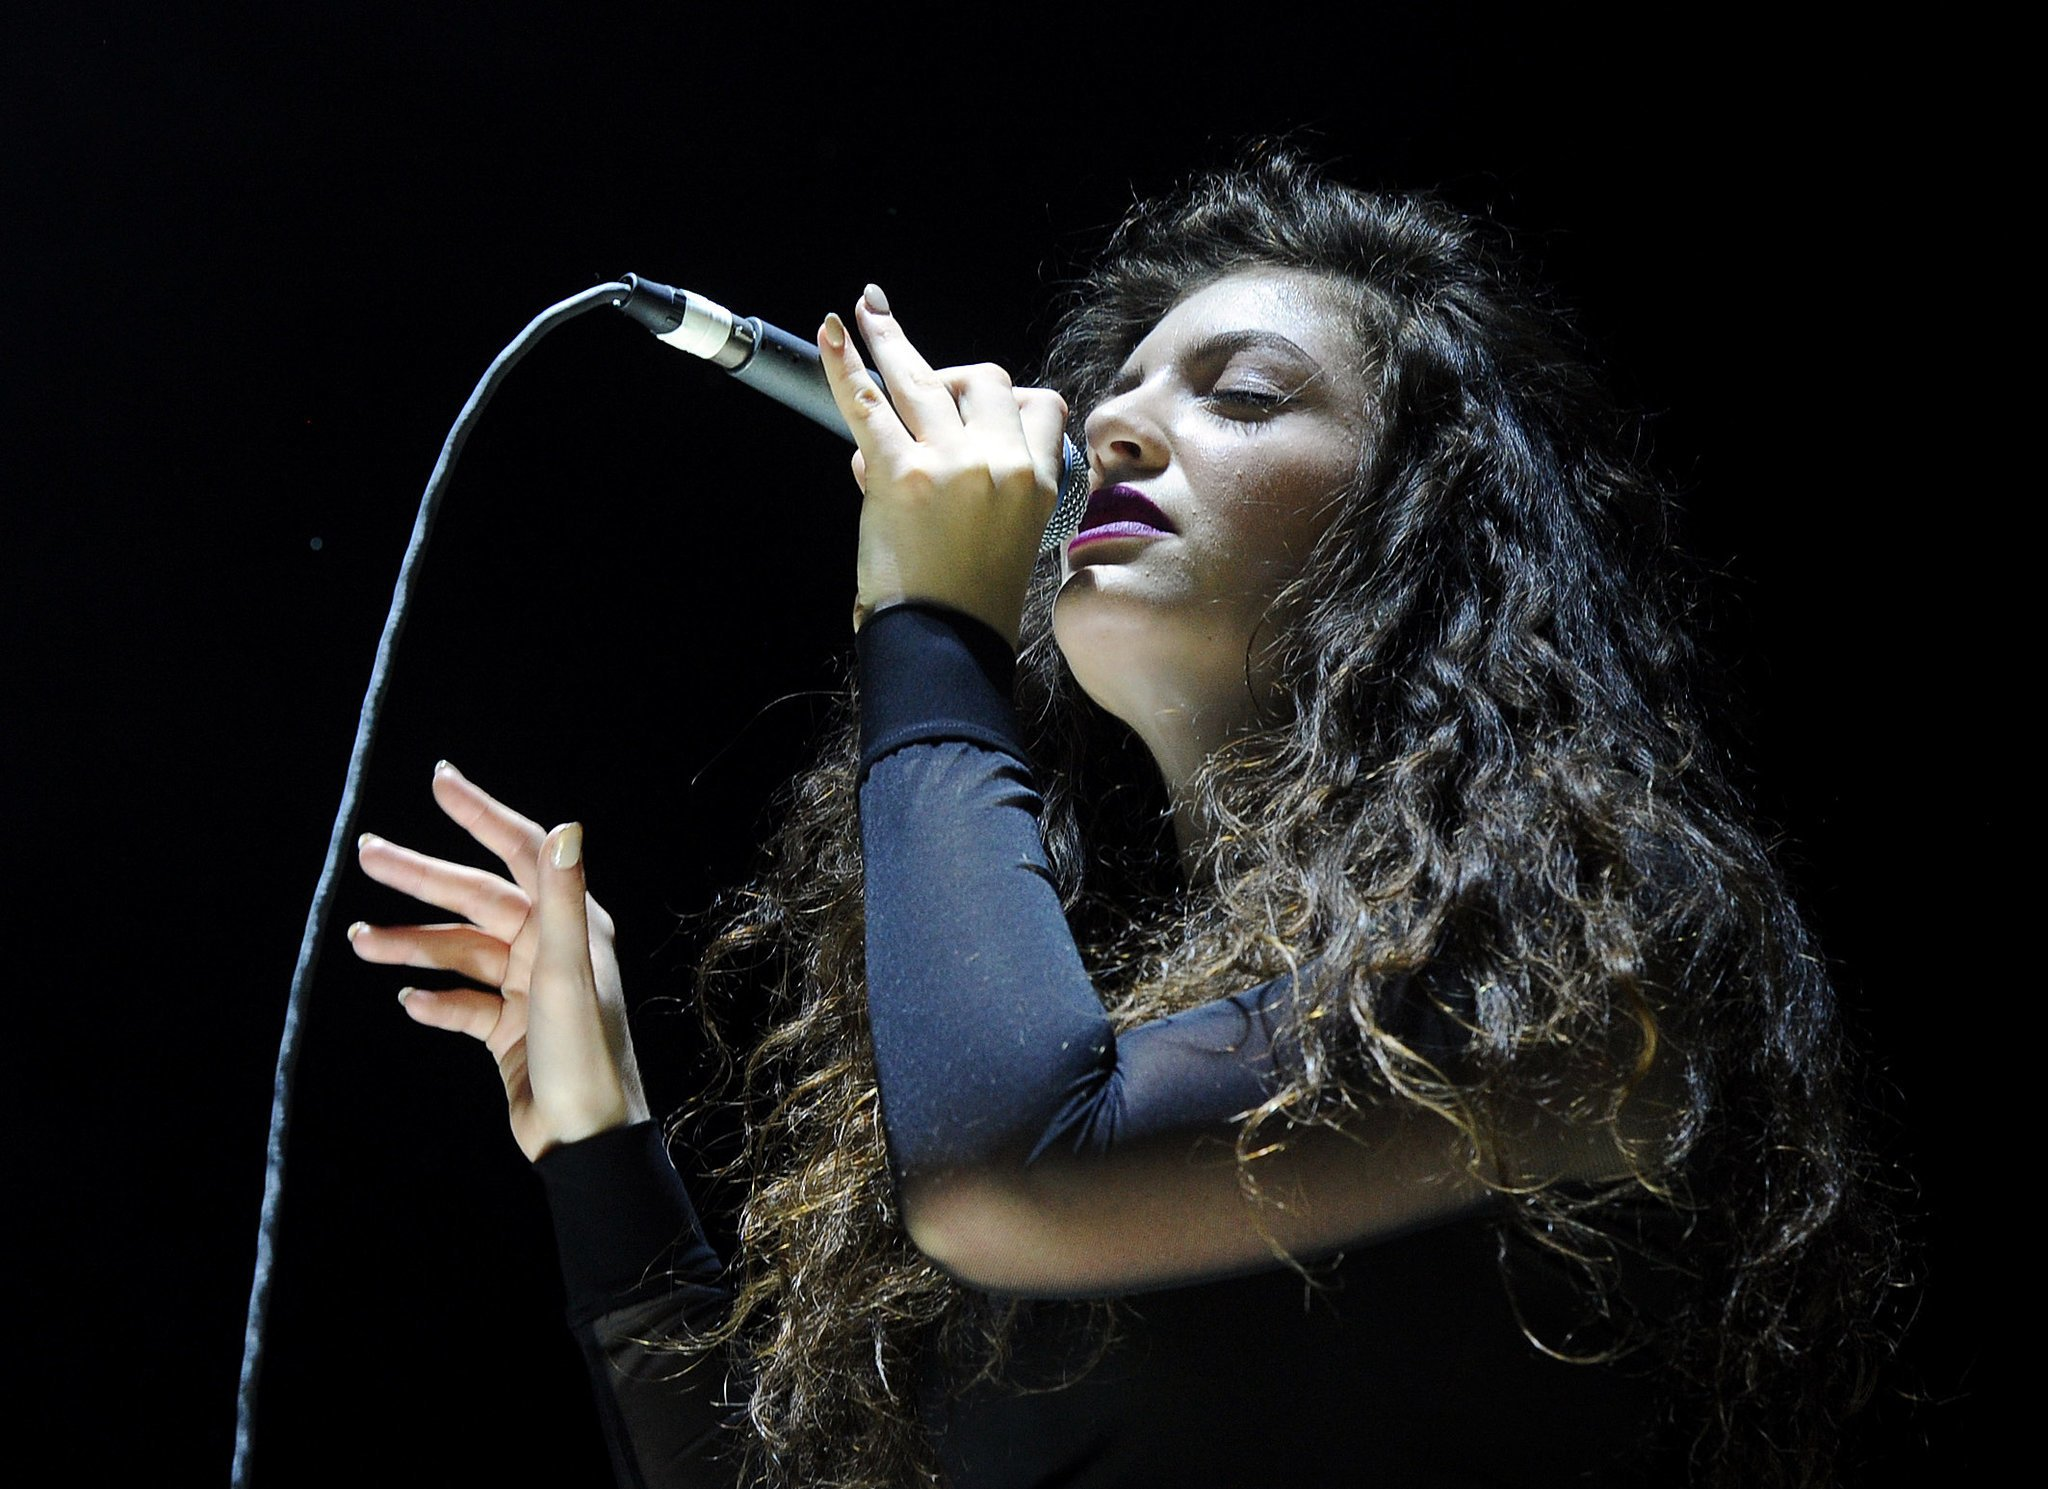 Lorde nackt adult image